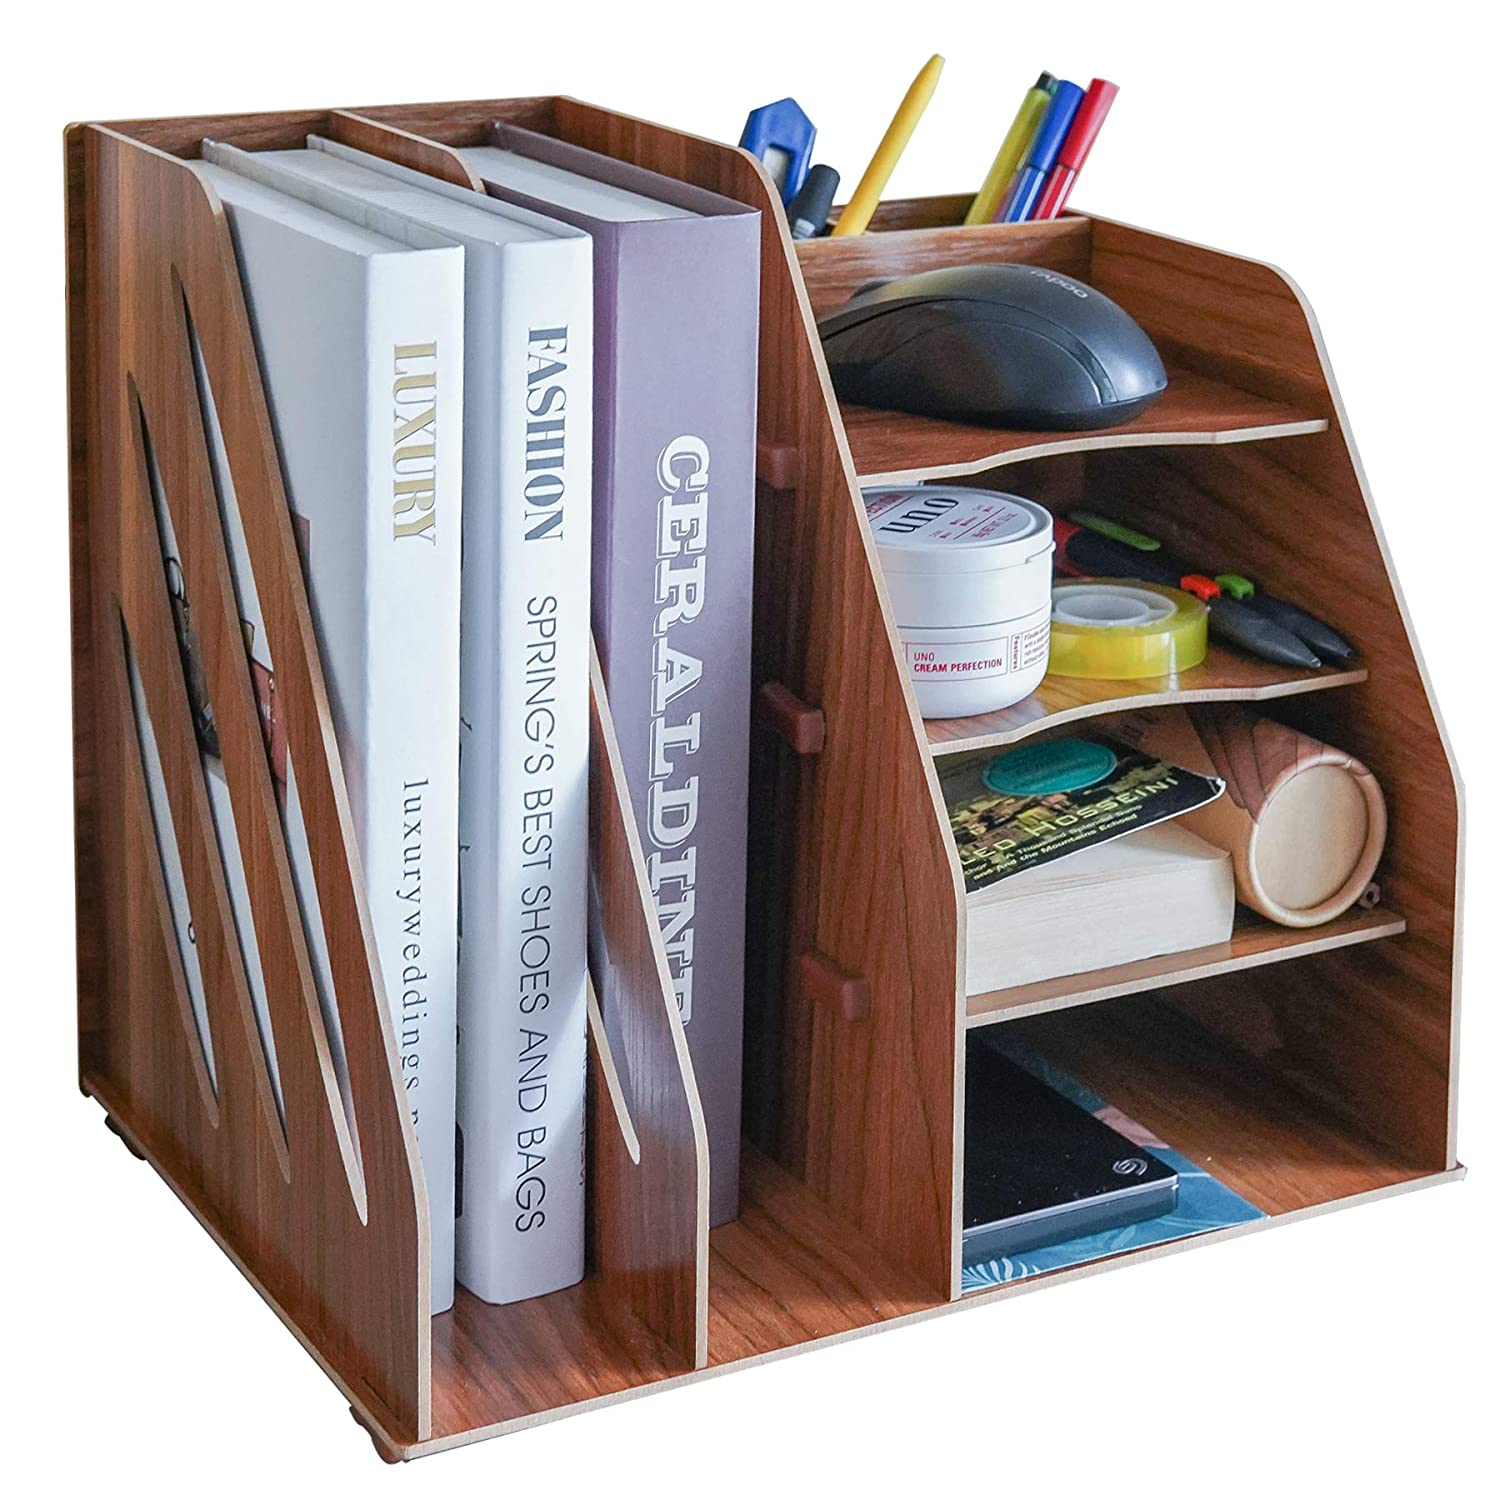 The Do This Get That Information On Workplace Desk Organizer